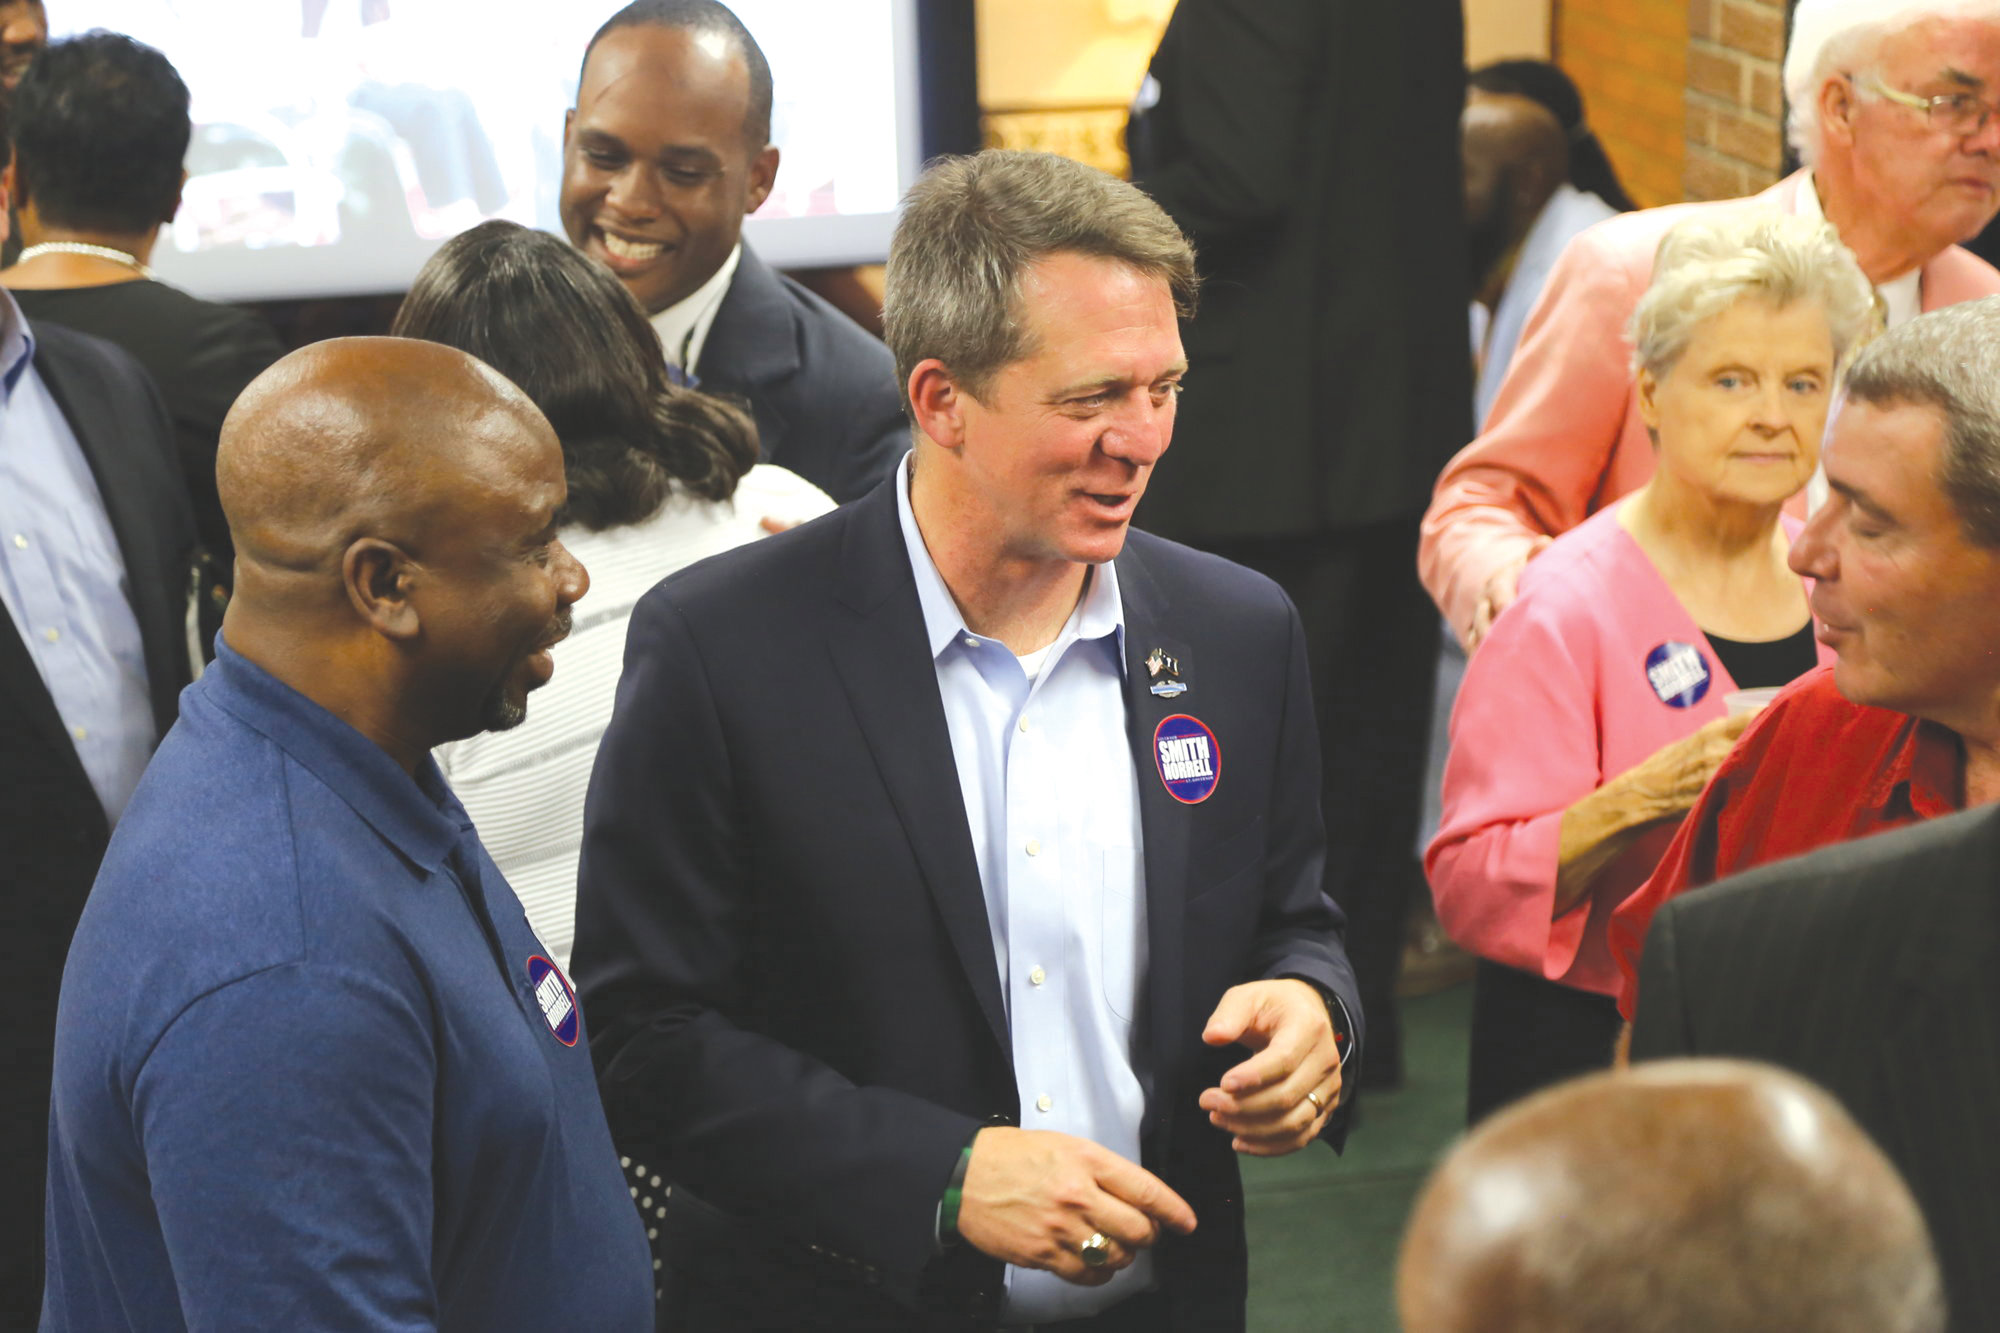 In this file photo, state Rep. James Smith, the Democratic gubernatorial candidate on the Nov. 6 ballot in South Carolina, meets with voters in Sumter at a fundraiser on Oct. 15 for Sumter and Lee counties.